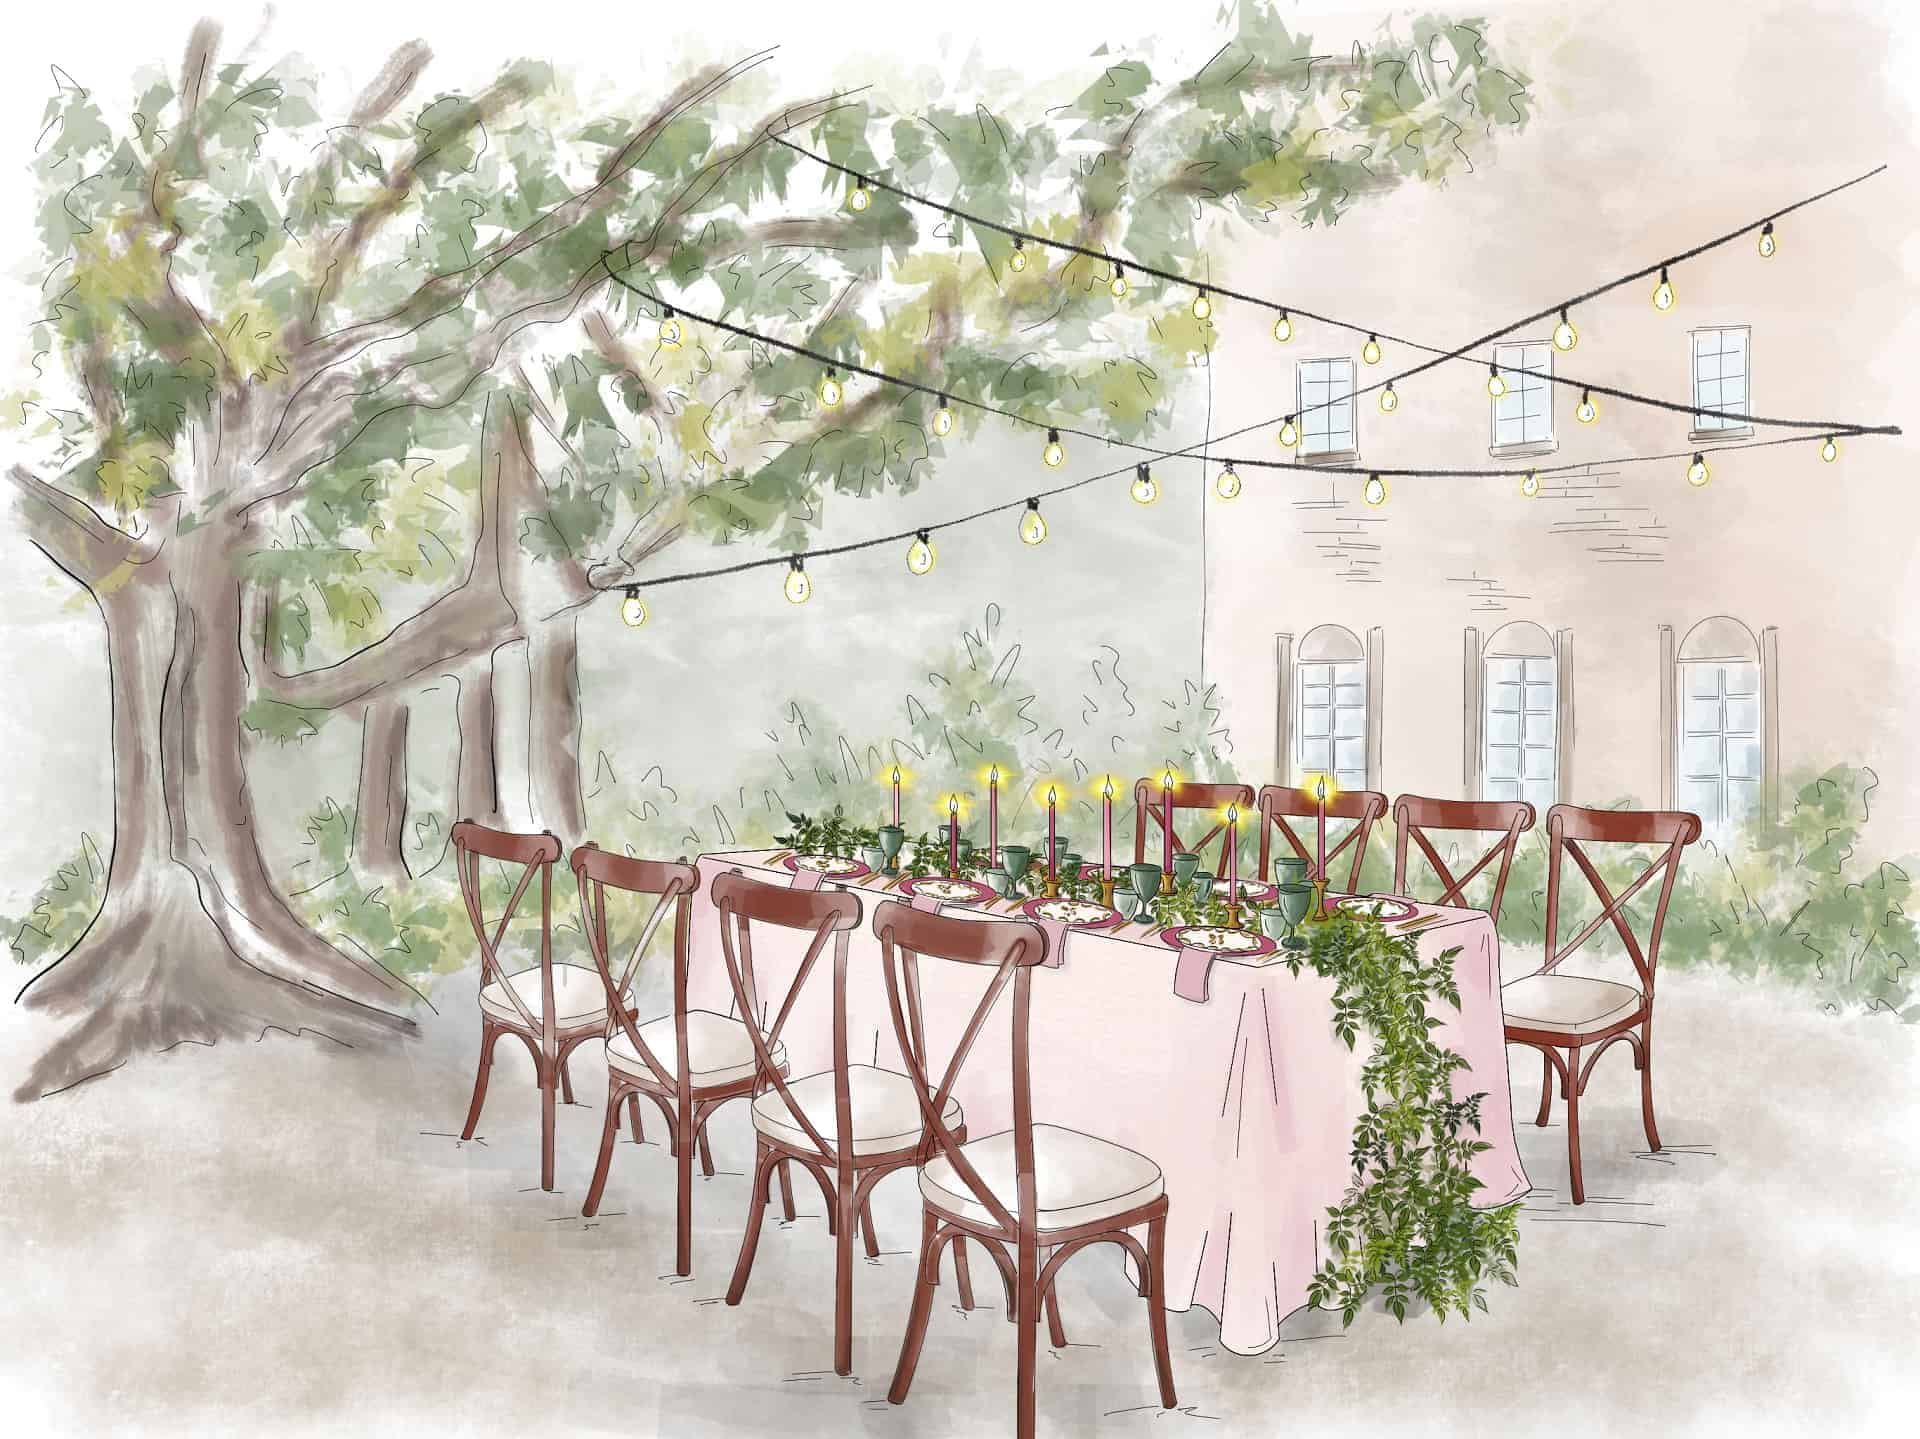 handdrawn illustration of outdoor wedding set up